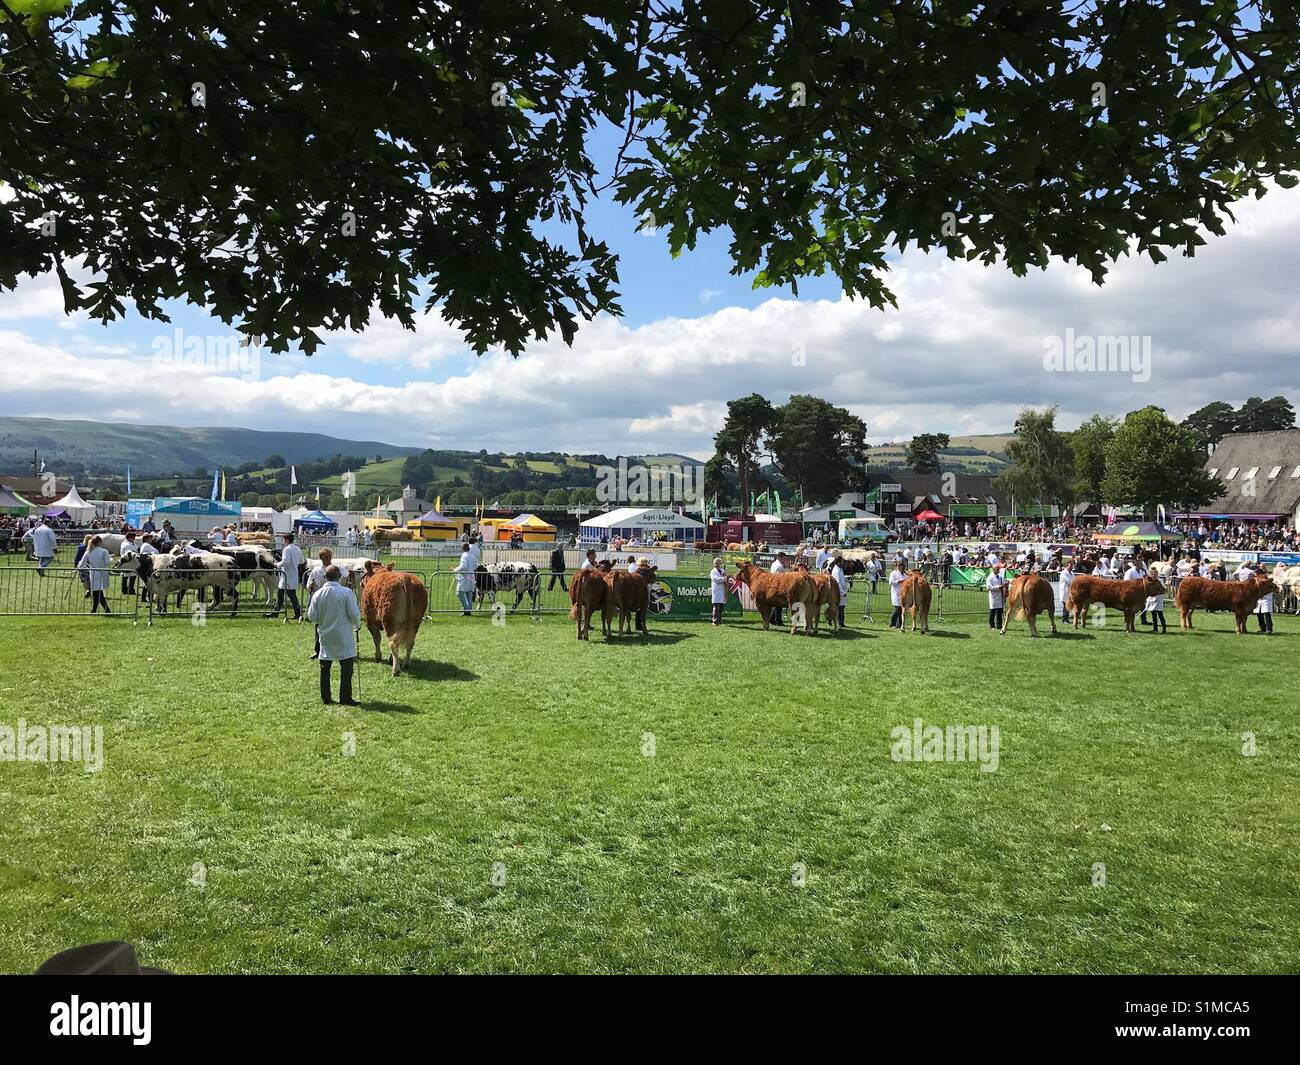 Royal Welsh Show, Builth Wells, Wales - August 2017: Judging of the cattle competition underway in the ring Stock Photo